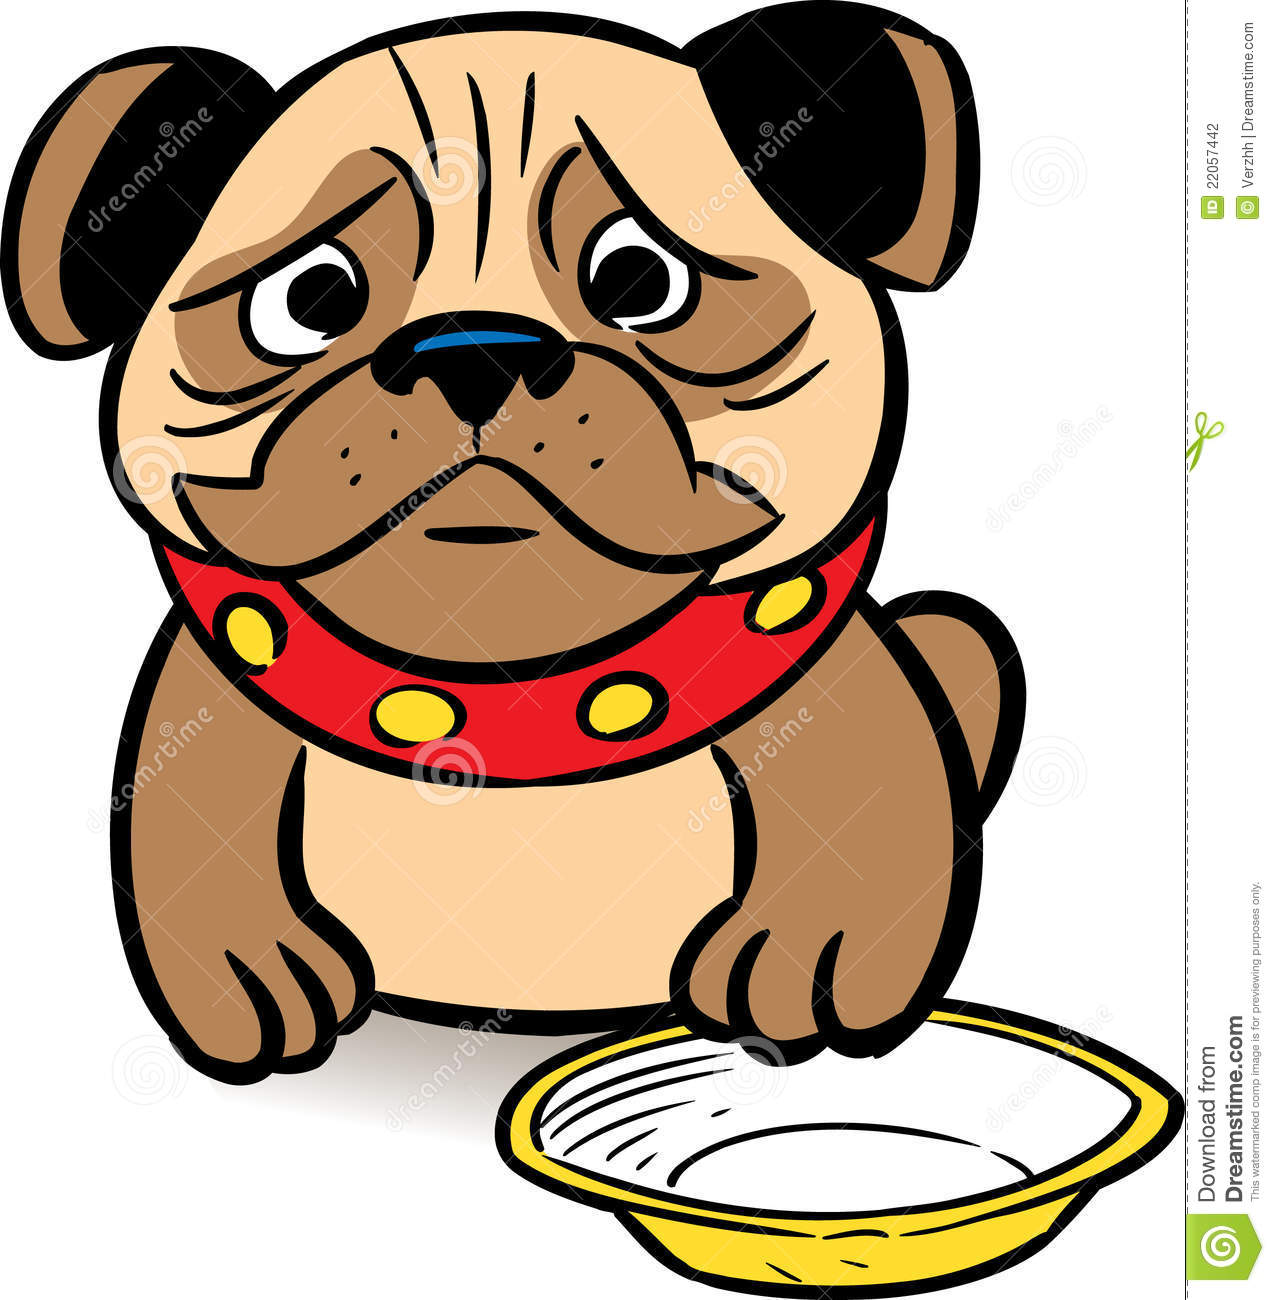 Hungry pug stock vector. Illustration of puppy, small ...